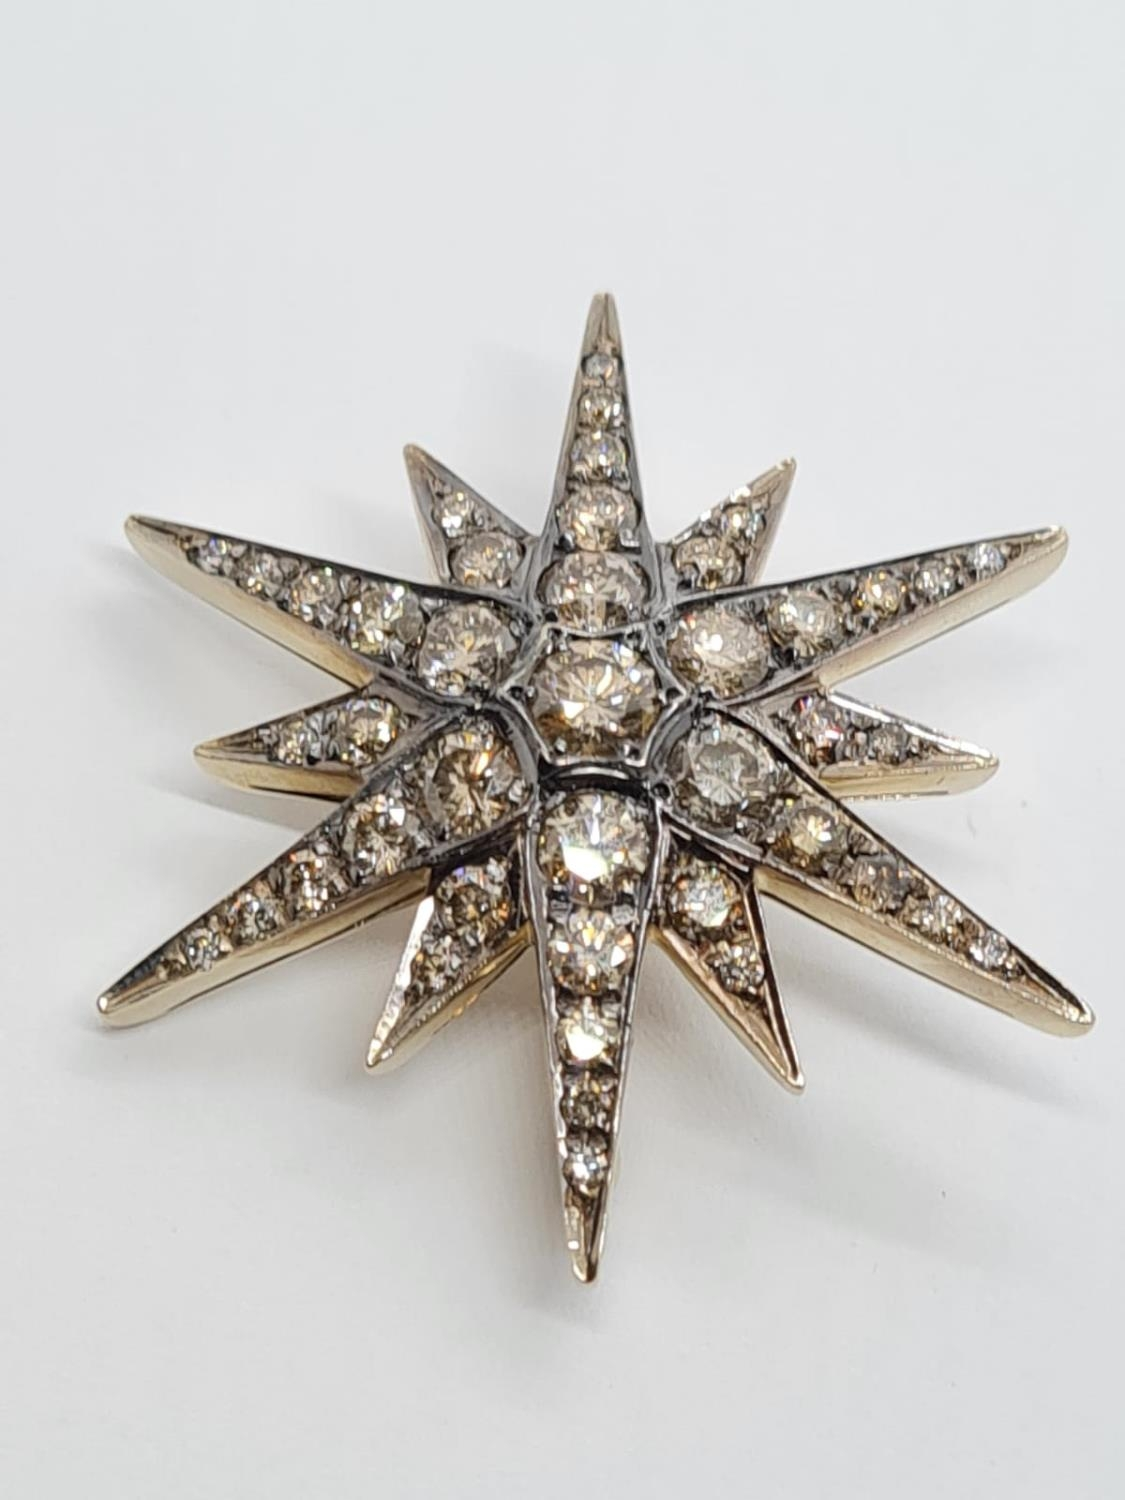 Vintage 18ct Gold Star Brooch with 3 ct of Diamonds. Weight 8.2g 3.5 cm. - Image 2 of 6